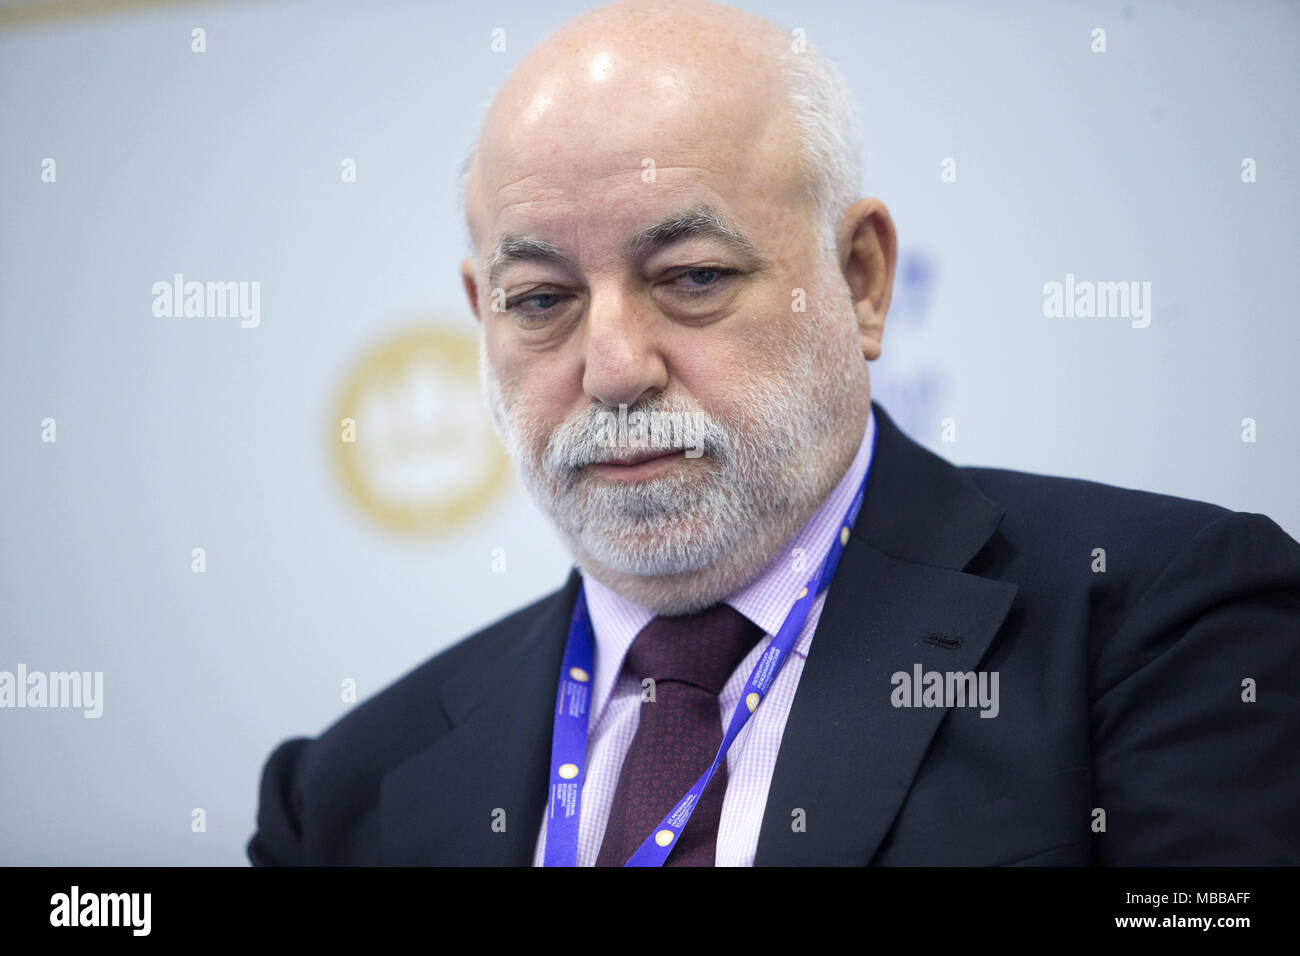 June 2, 2017 - Saint Petersburg, Russia - Russian billionaire and chairman of Renova Group, Victor Vekselberg attends a session of the St. Petersburg International Economic Forum (SPIEF)..06 April 2018 have been put on sanctions list by the US Department of the Treasurys Office of Foreign Assets Control (OFAC) in consultation with the US Department of State. (Credit Image: © Igor Russak/SOPA Images via ZUMA Wire) - Stock Image